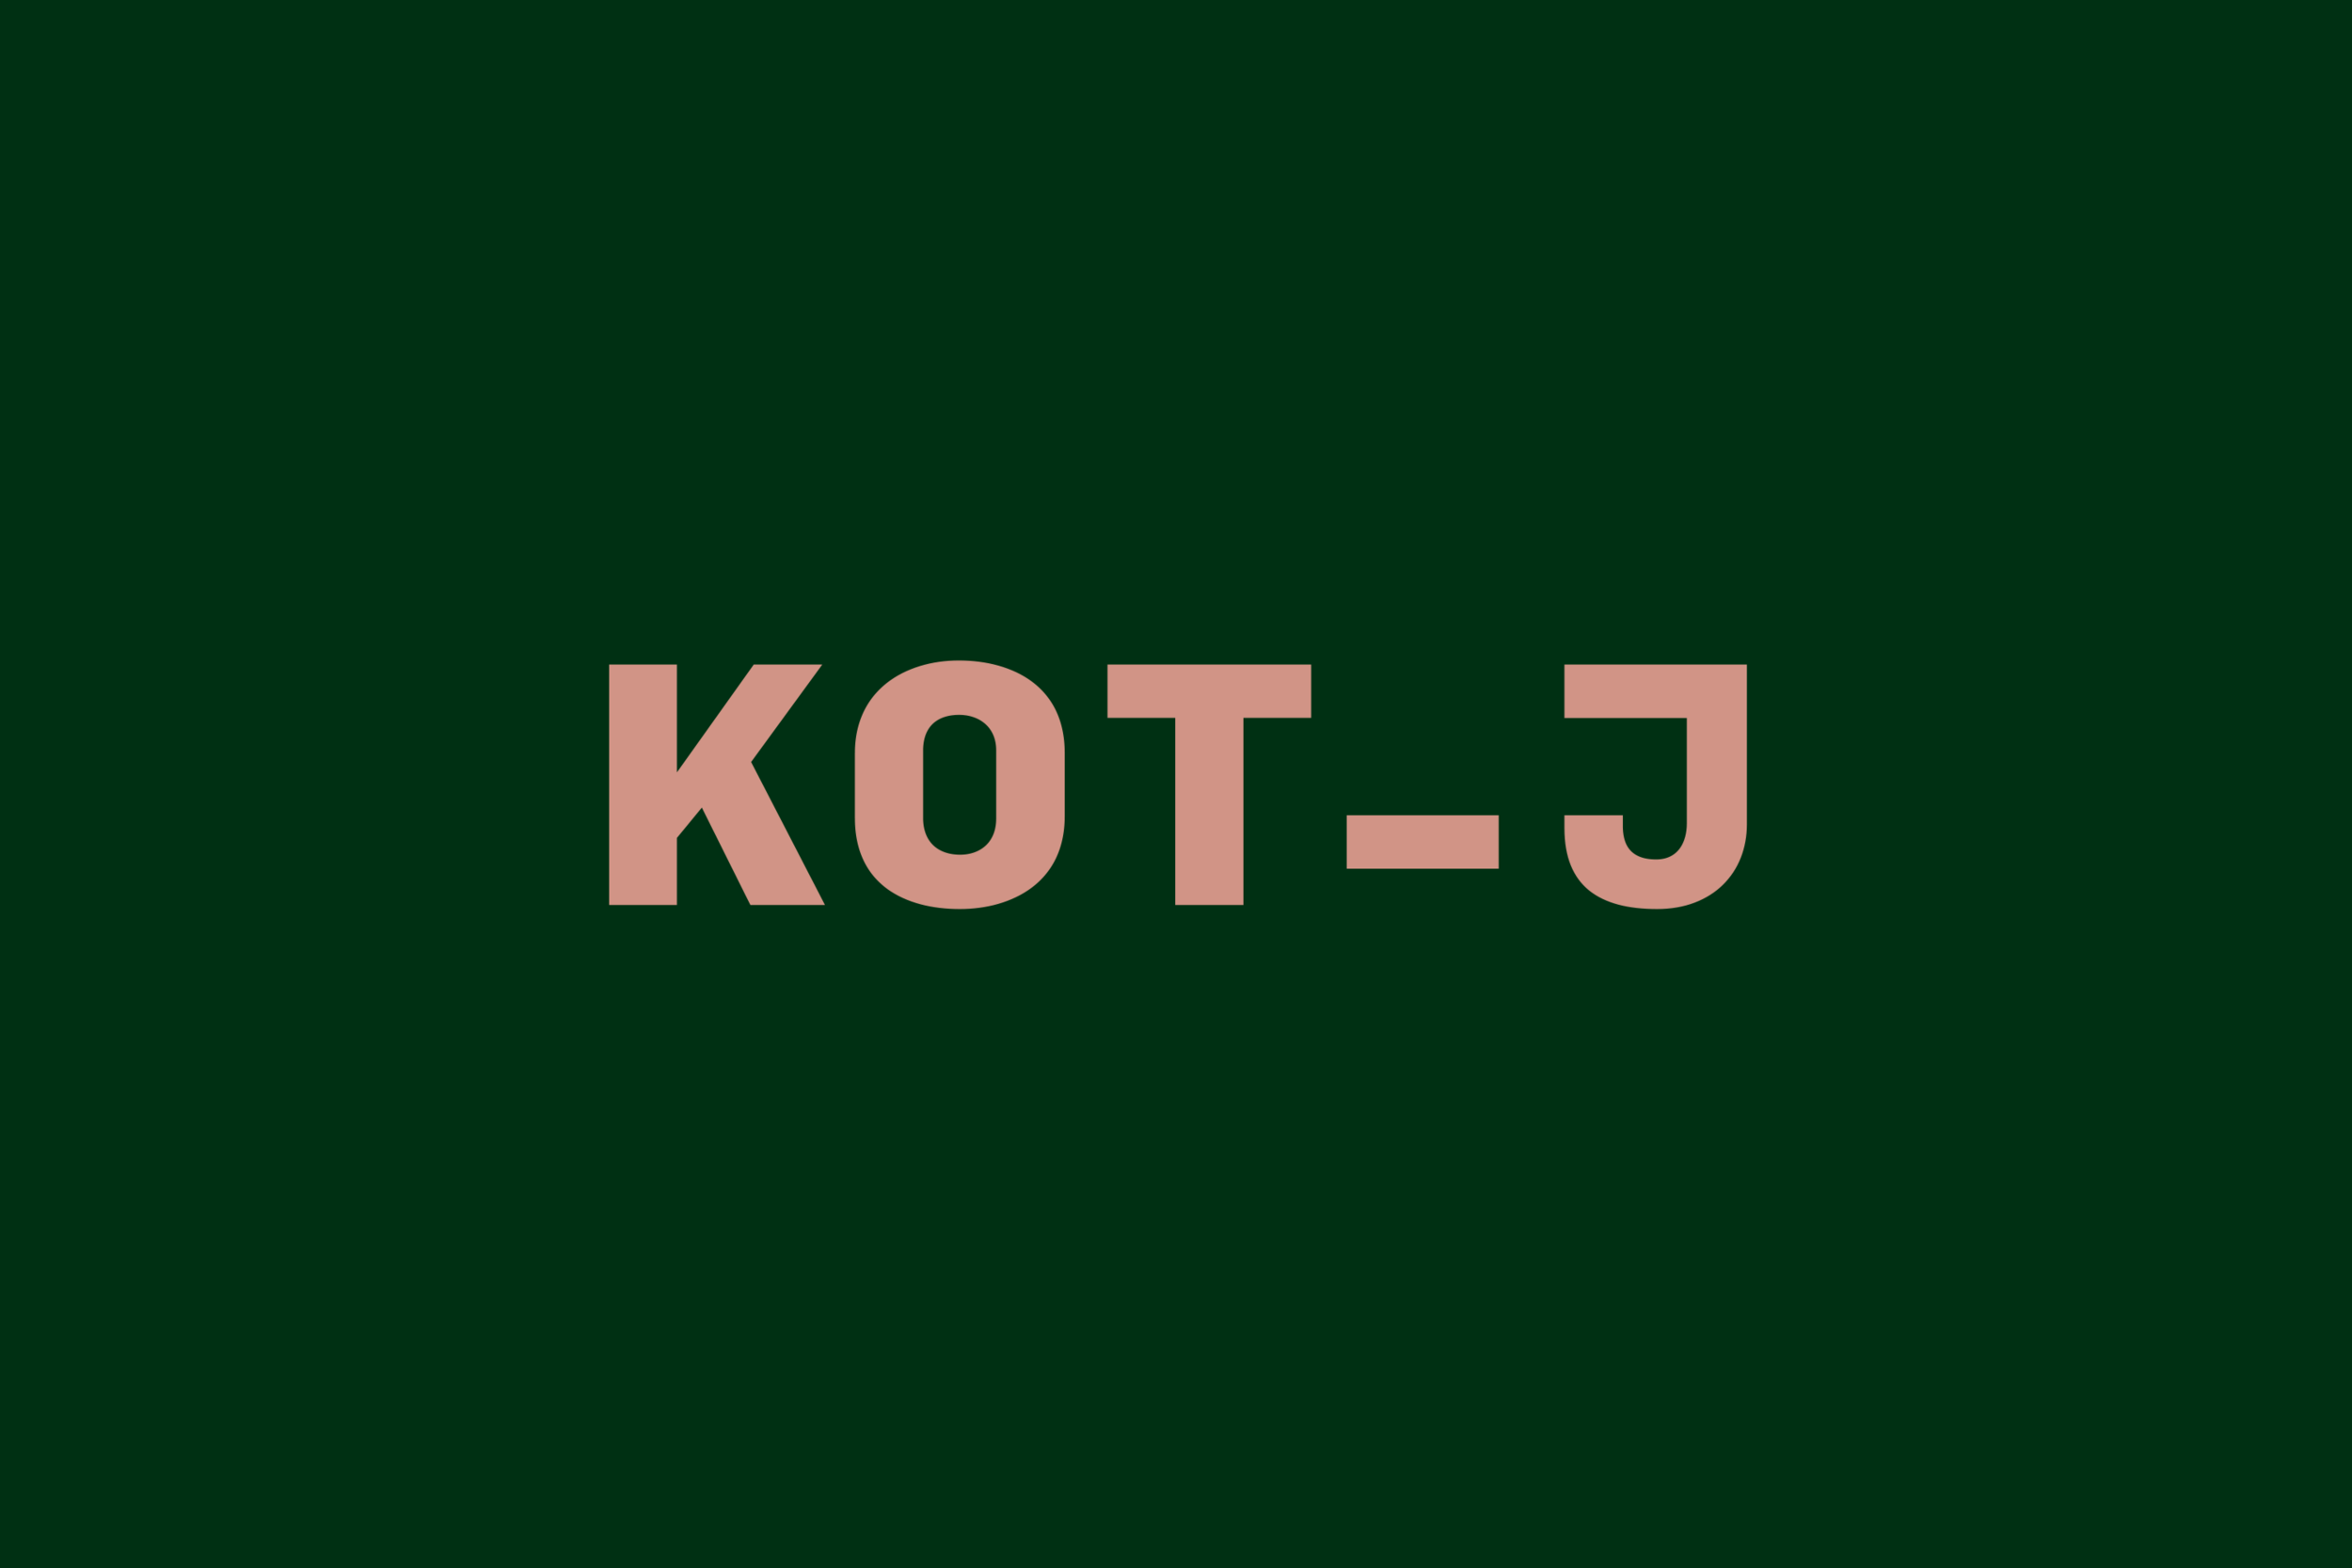 KOTJ_Project_Header.png